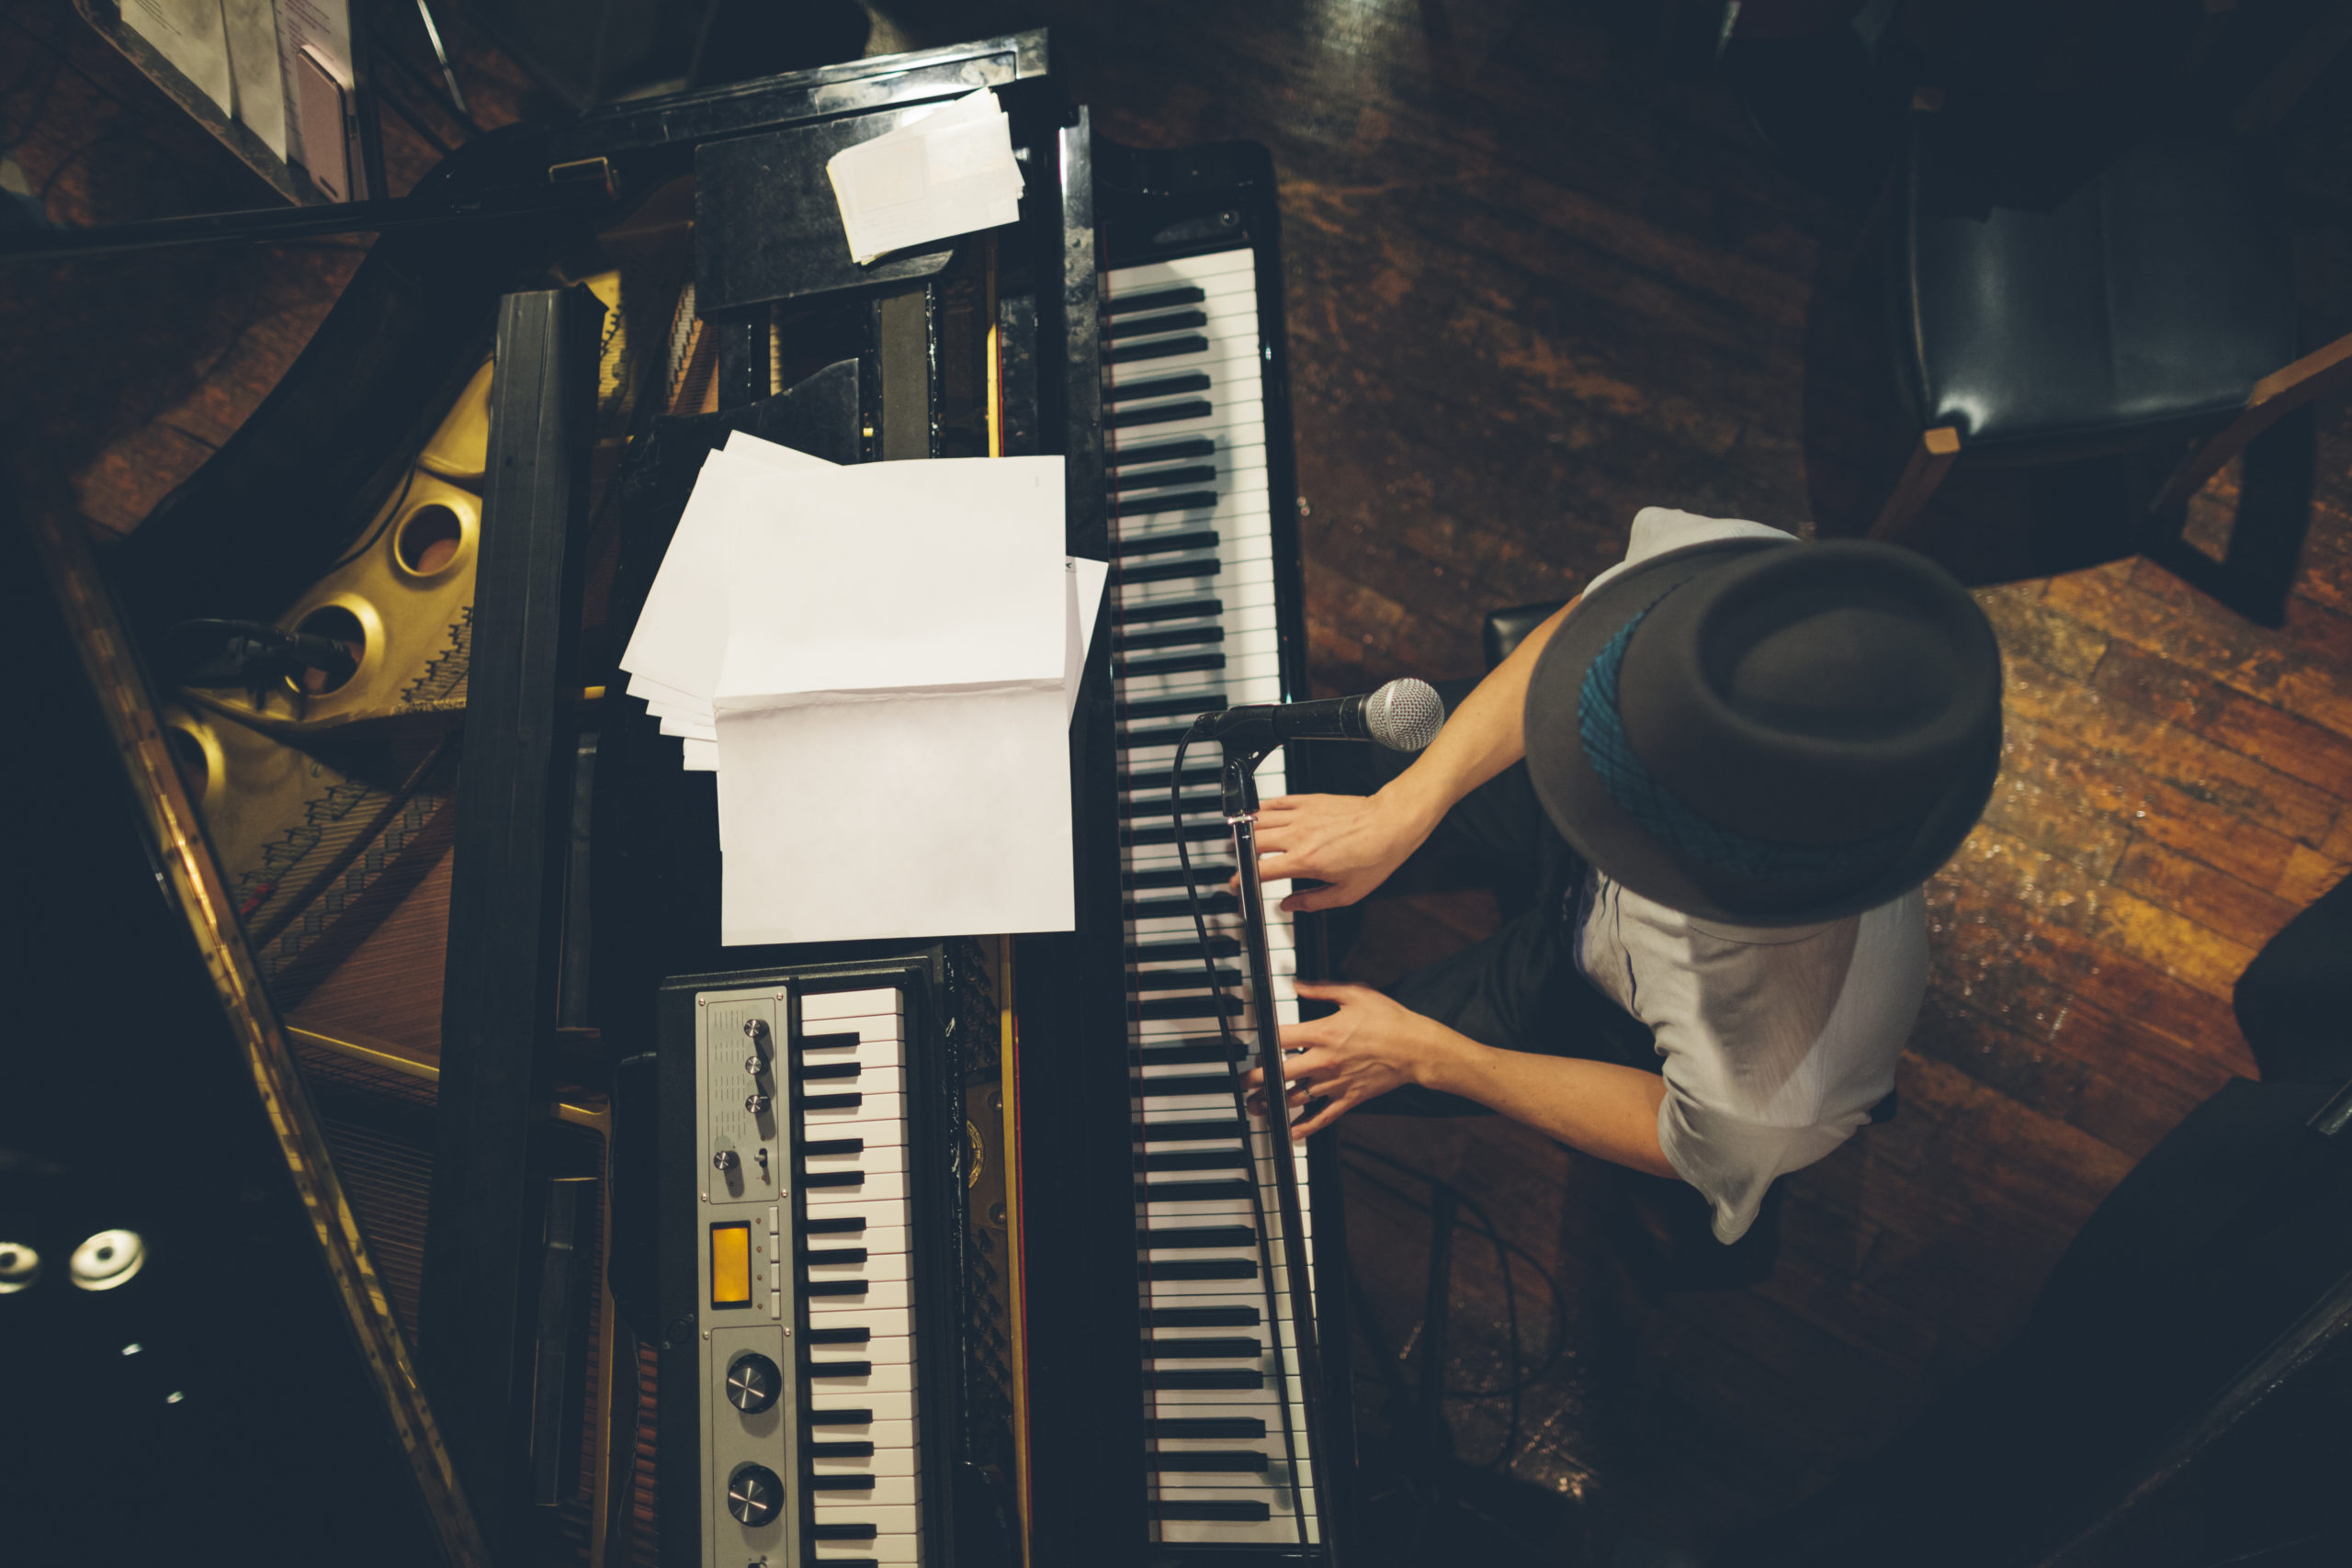 Overhead photo of man with fedora hat sitting at piano keyboard with music sheets on top for Kennedy Center performances